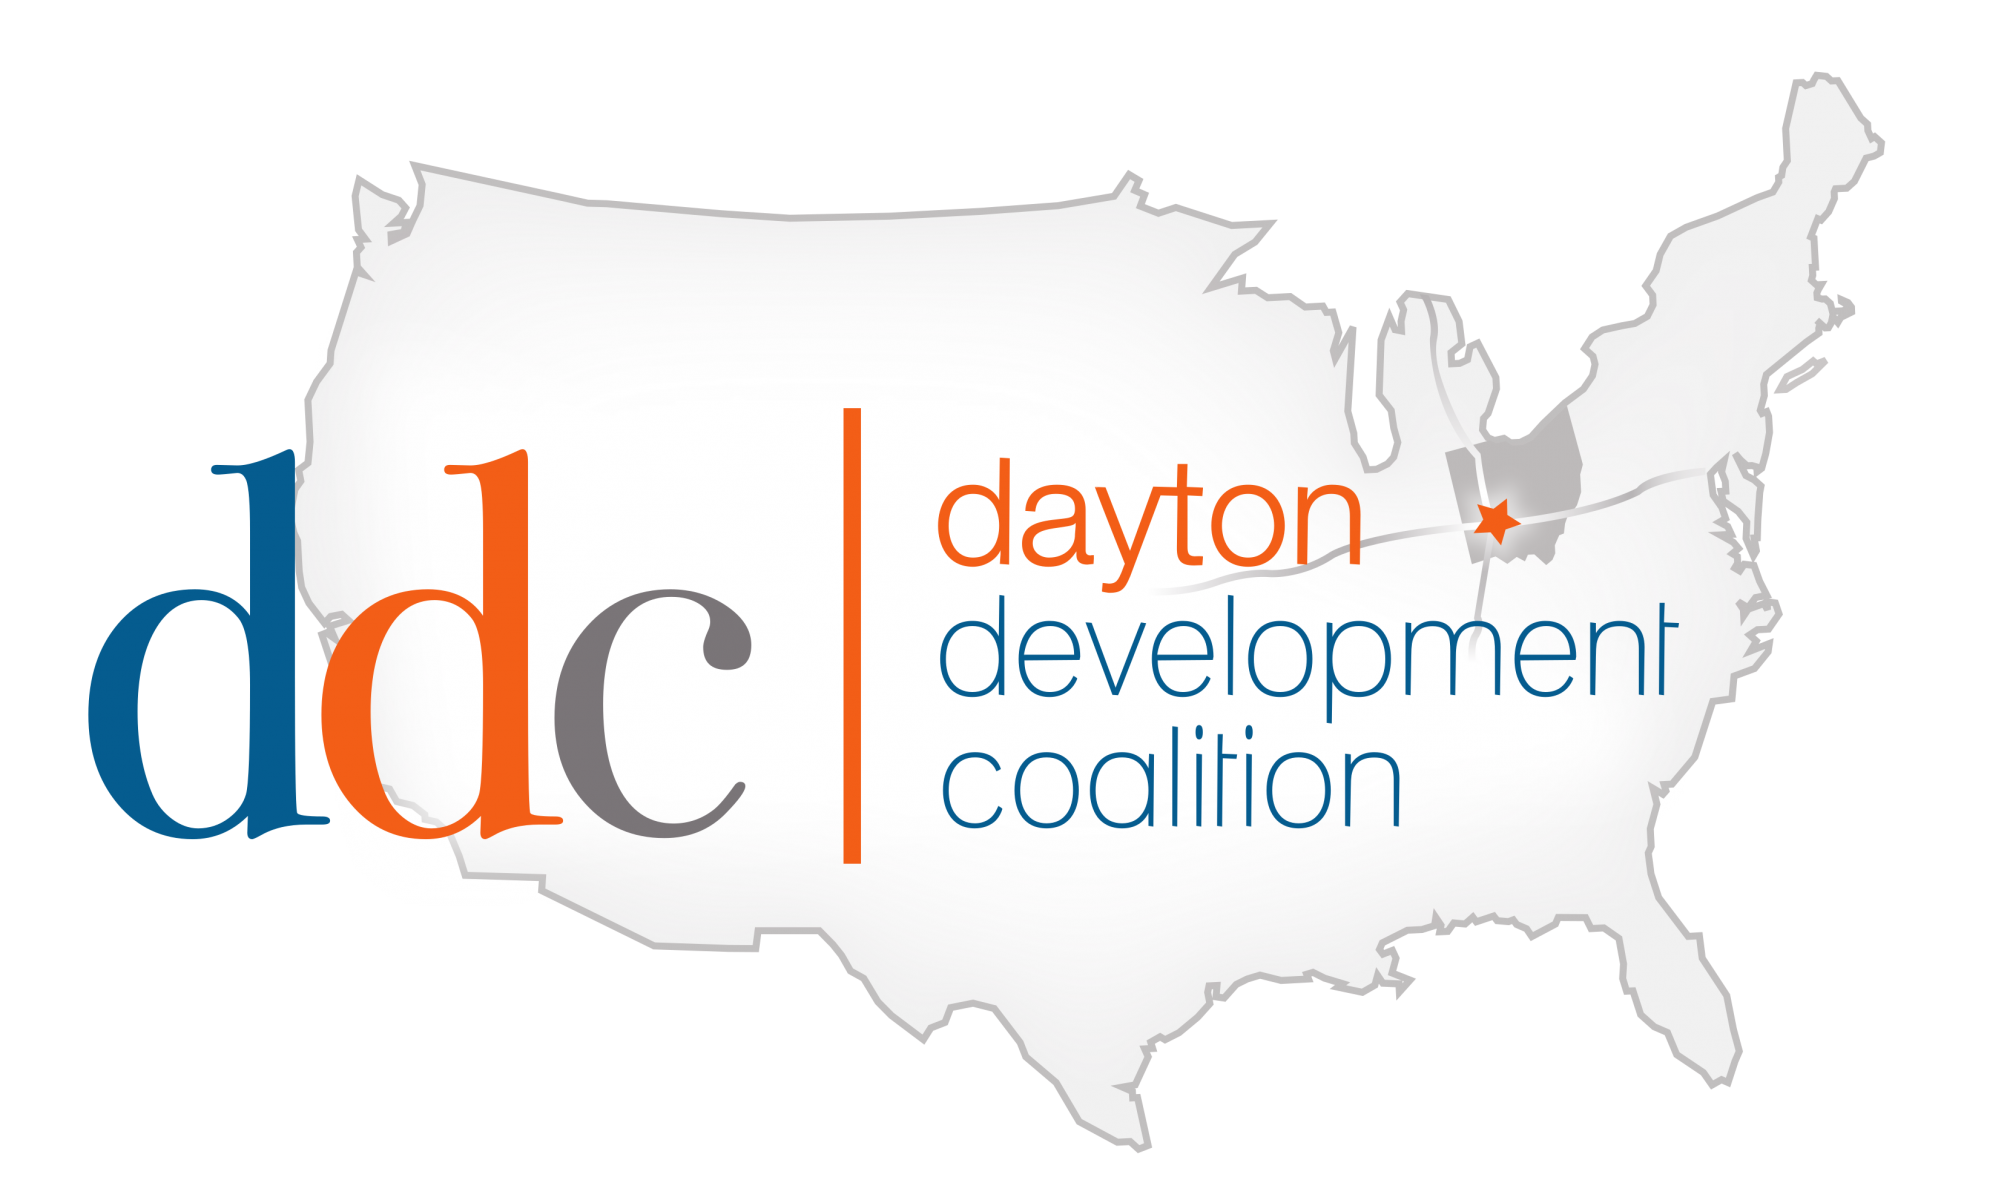 Dayton Development Coalition (DDC) Slide Image